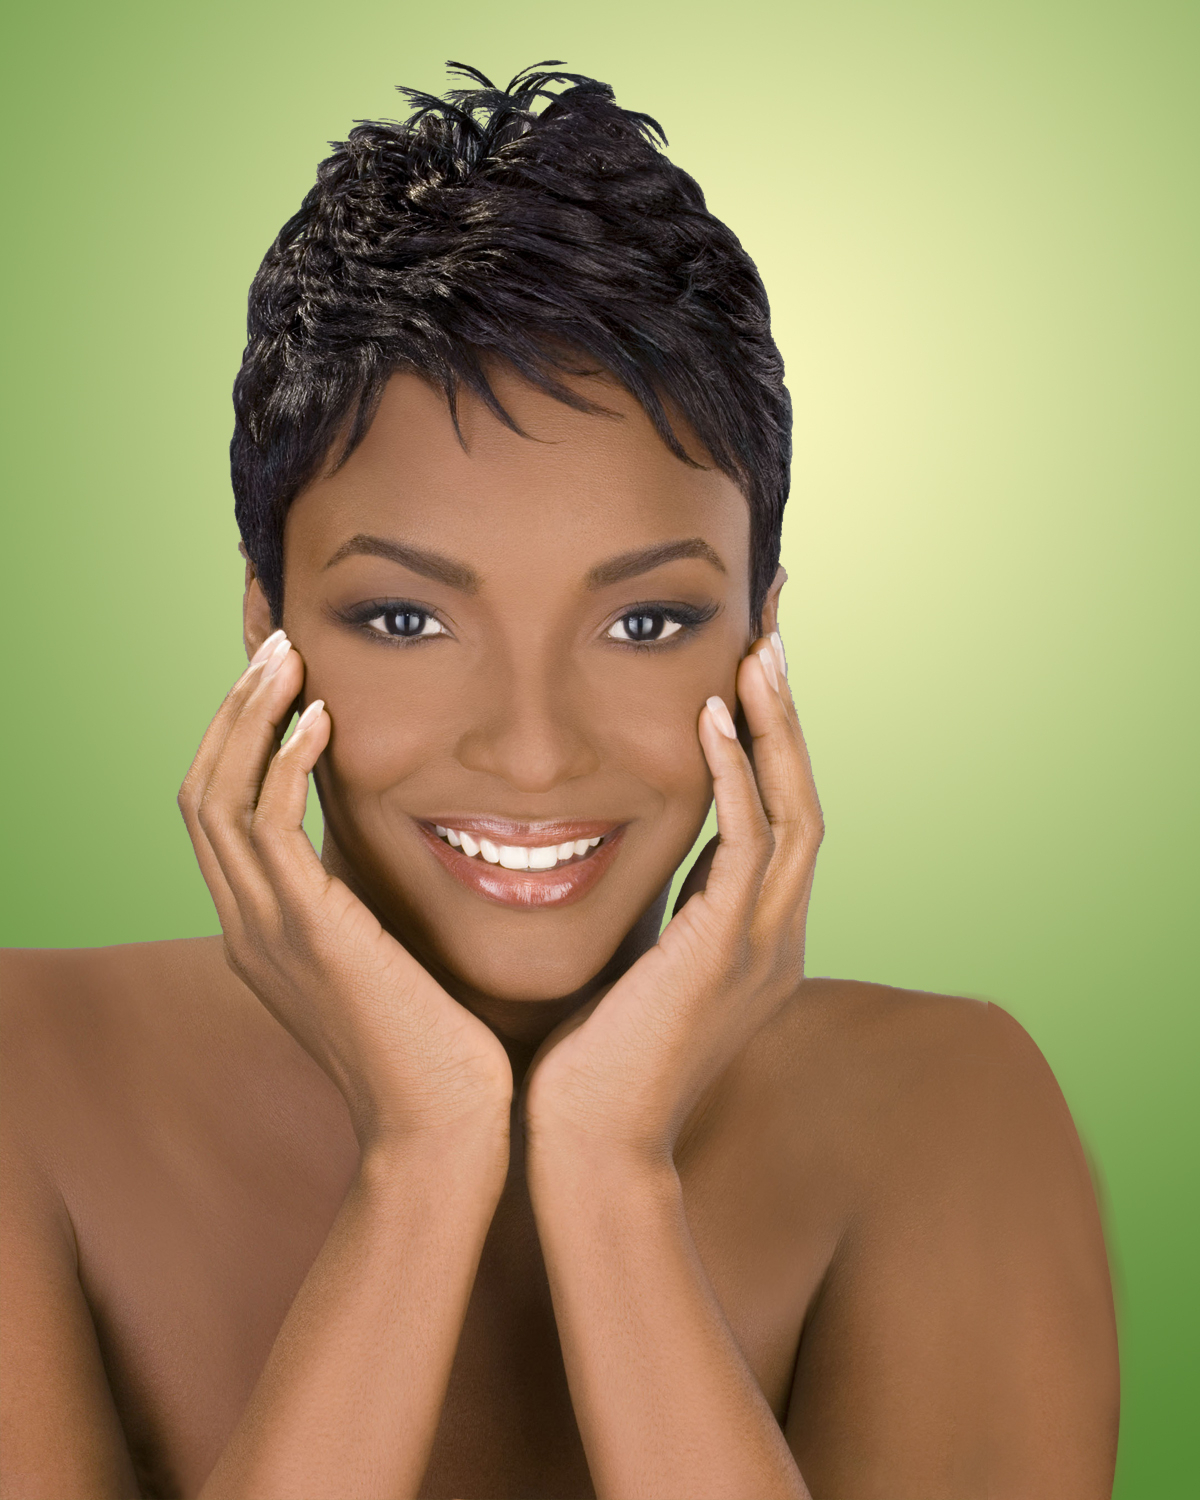 Black Hair Short Hairstyles – Hairstyle For Women & Man In Black Hairstyles Short Haircuts (View 16 of 25)